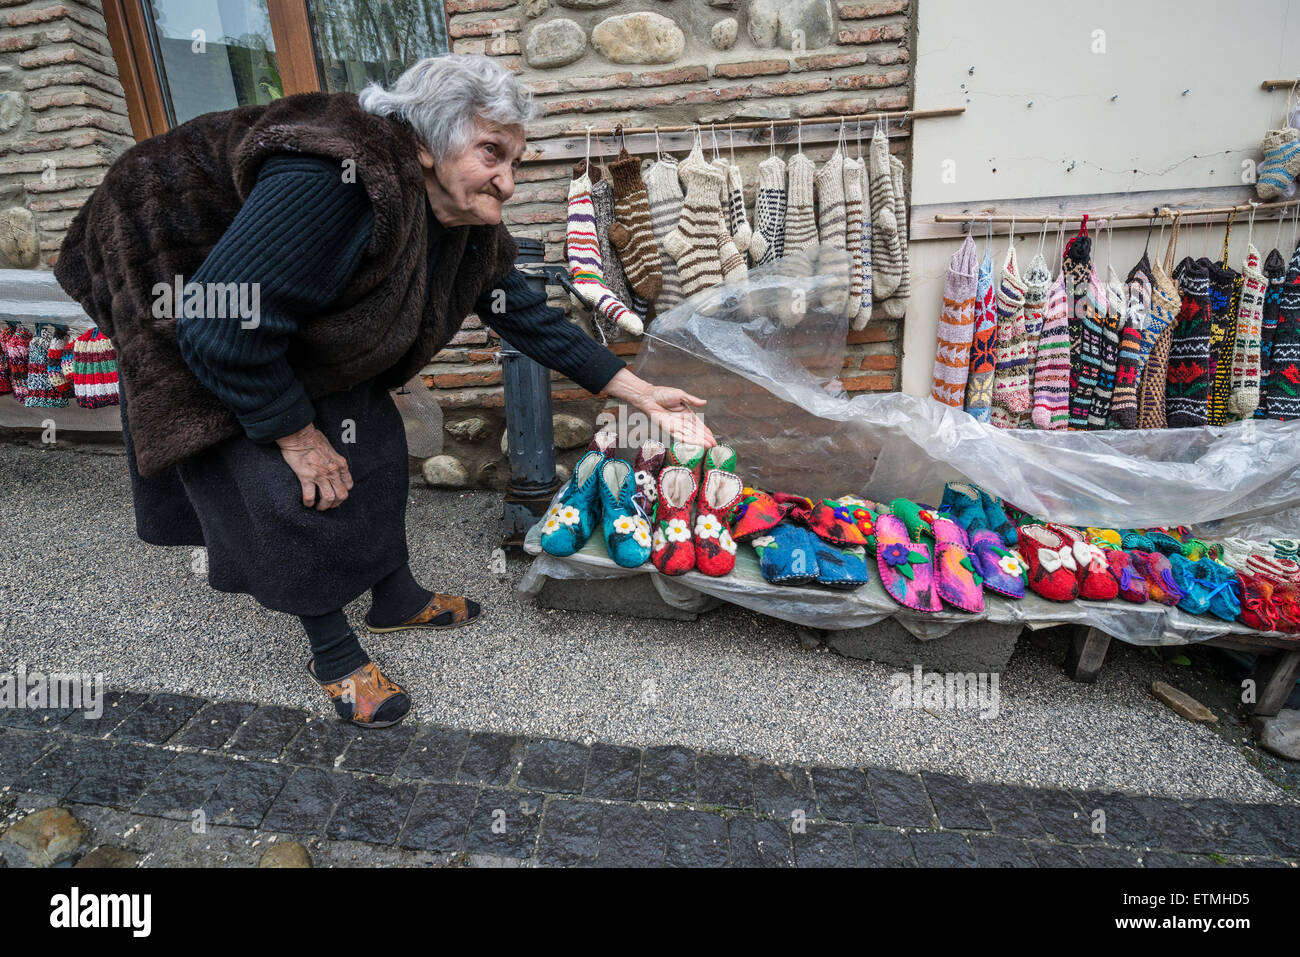 Old woman selling wool slippers and socks on souvenir stand in Sighnaghi, Kakheti region of Georgia - Stock Image